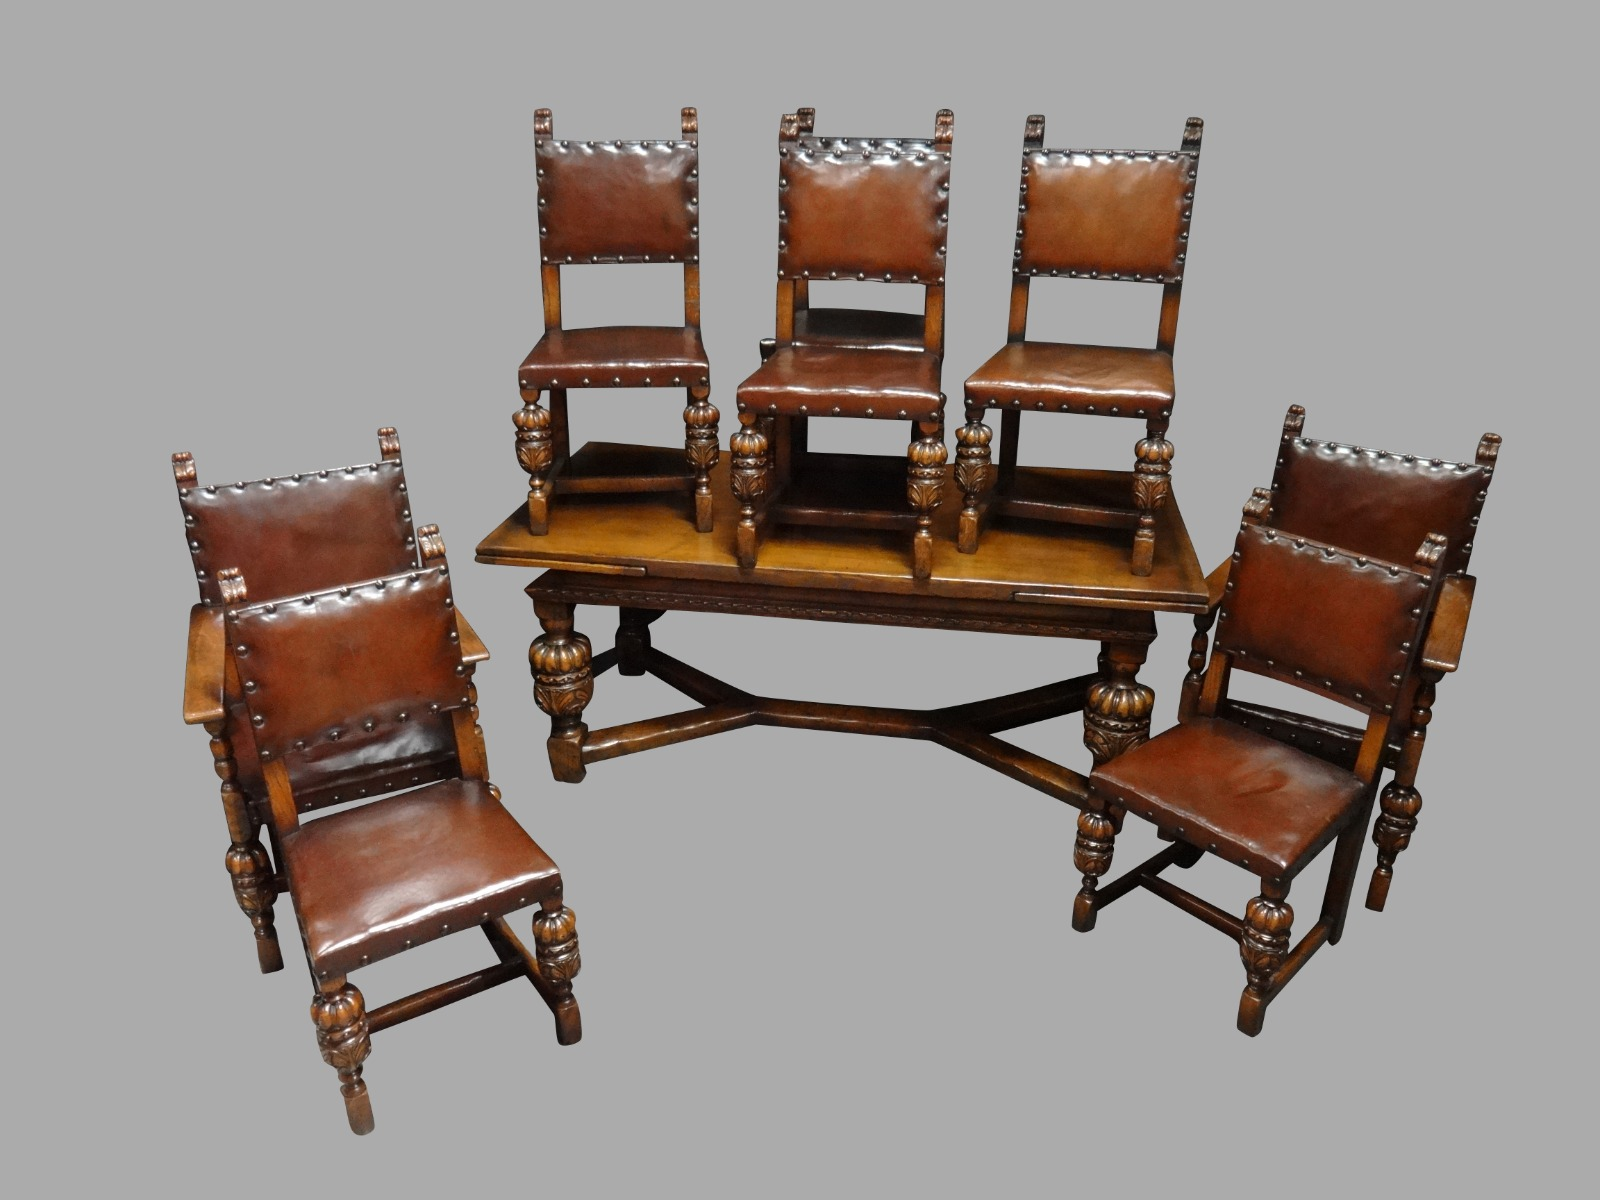 Large Oak Draw Leaf Table & Eight Hide Chairs (1 of 1)